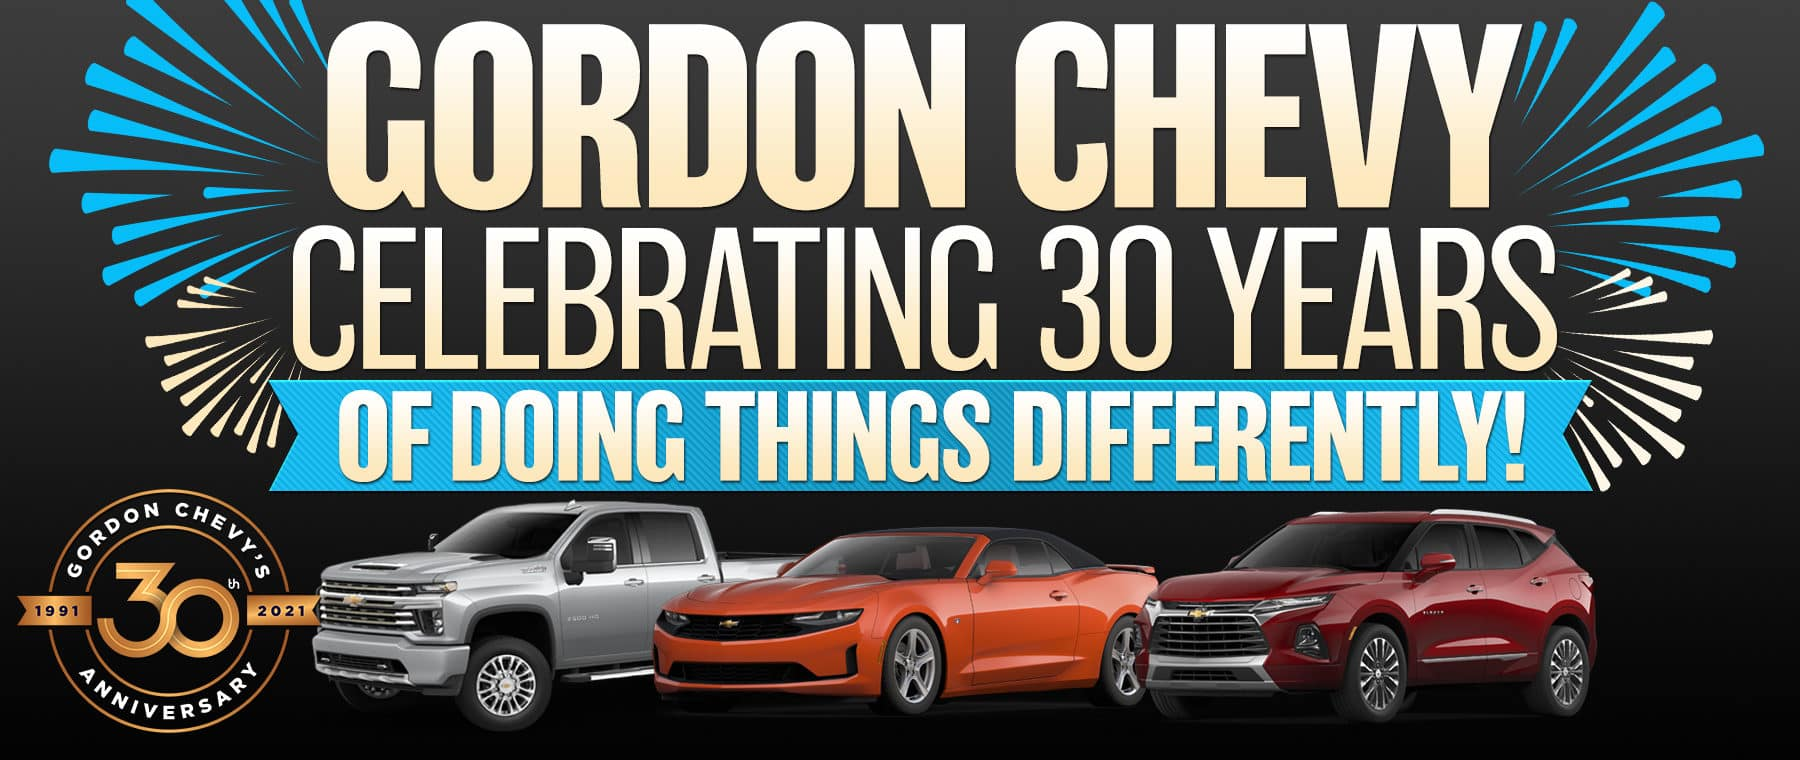 30 Years of doing things different